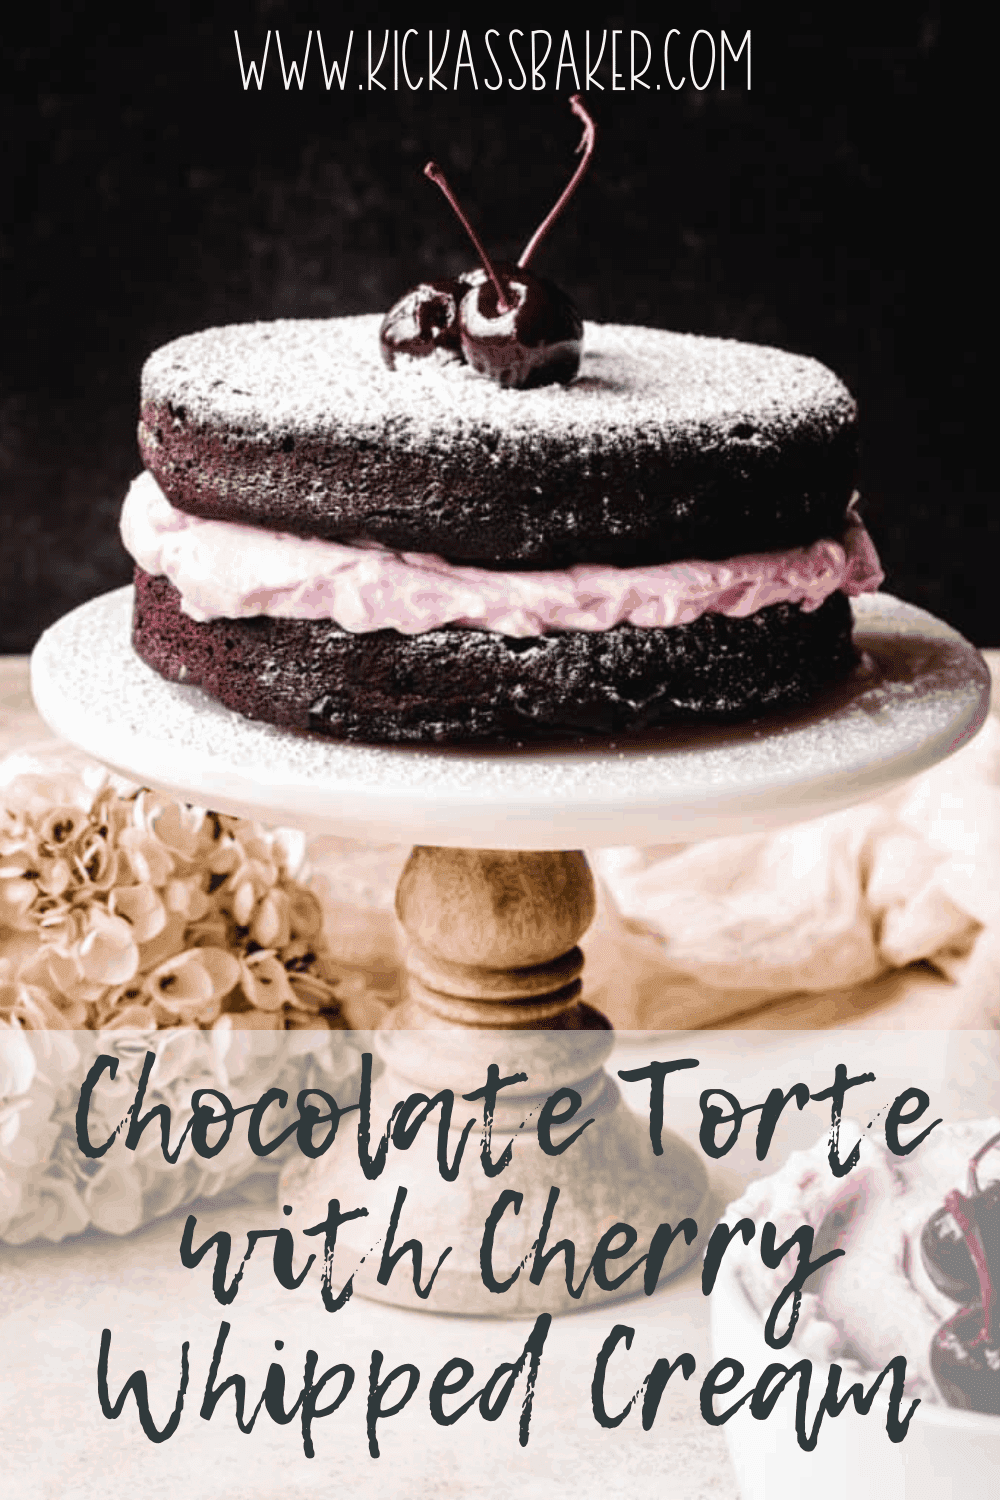 Make this delicious chocolate torte with bourbon cherry whip cream for your next celebration or just because..